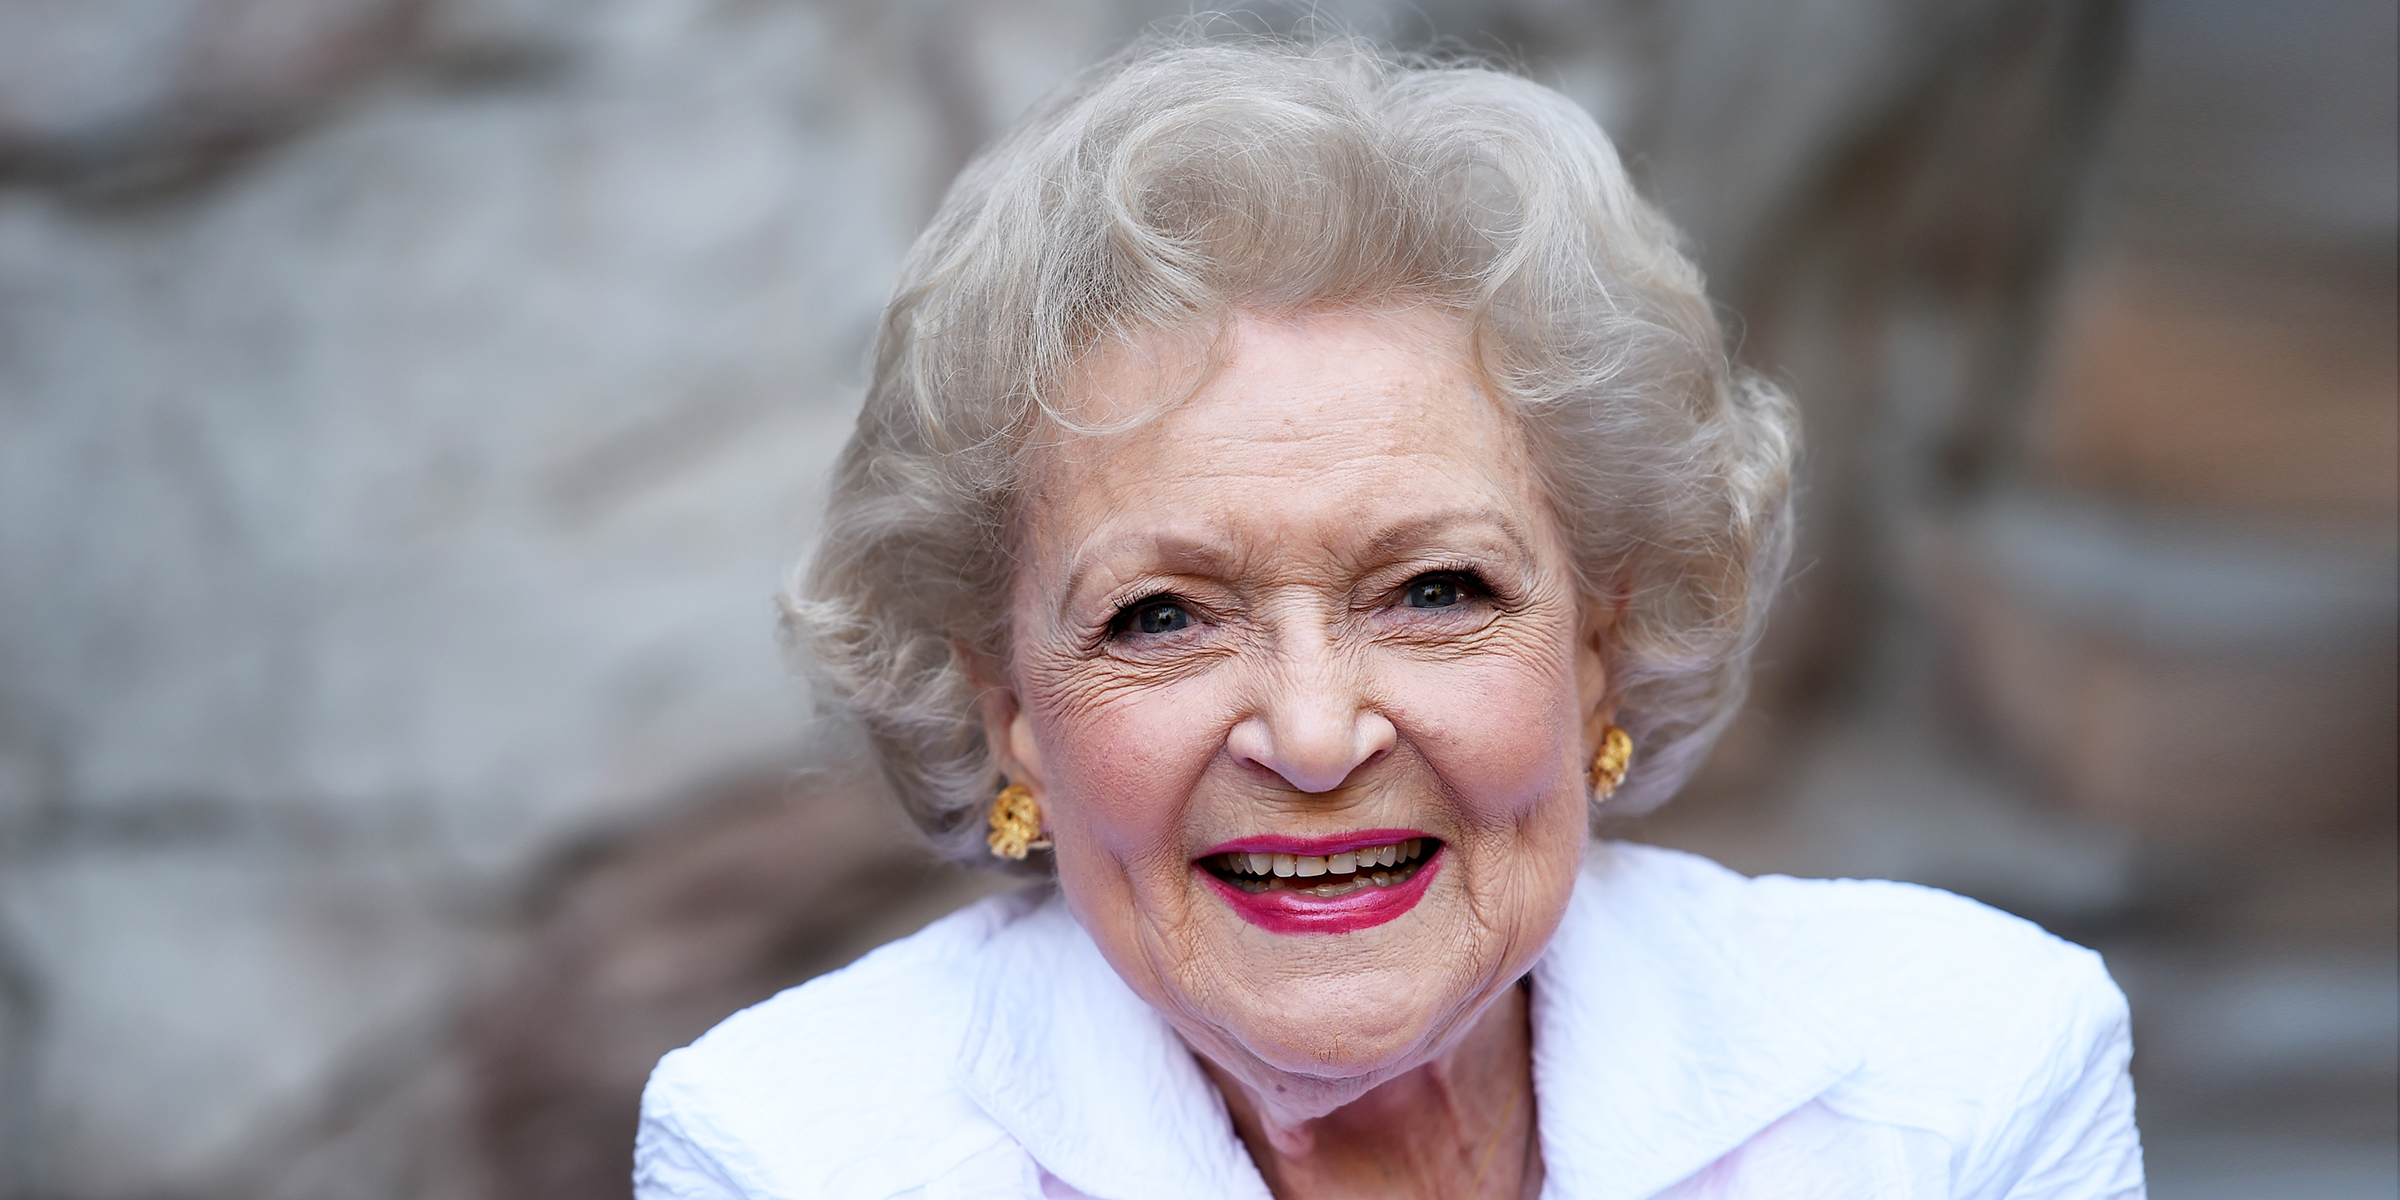 Betty White turns 98 and here are some of her best quotes